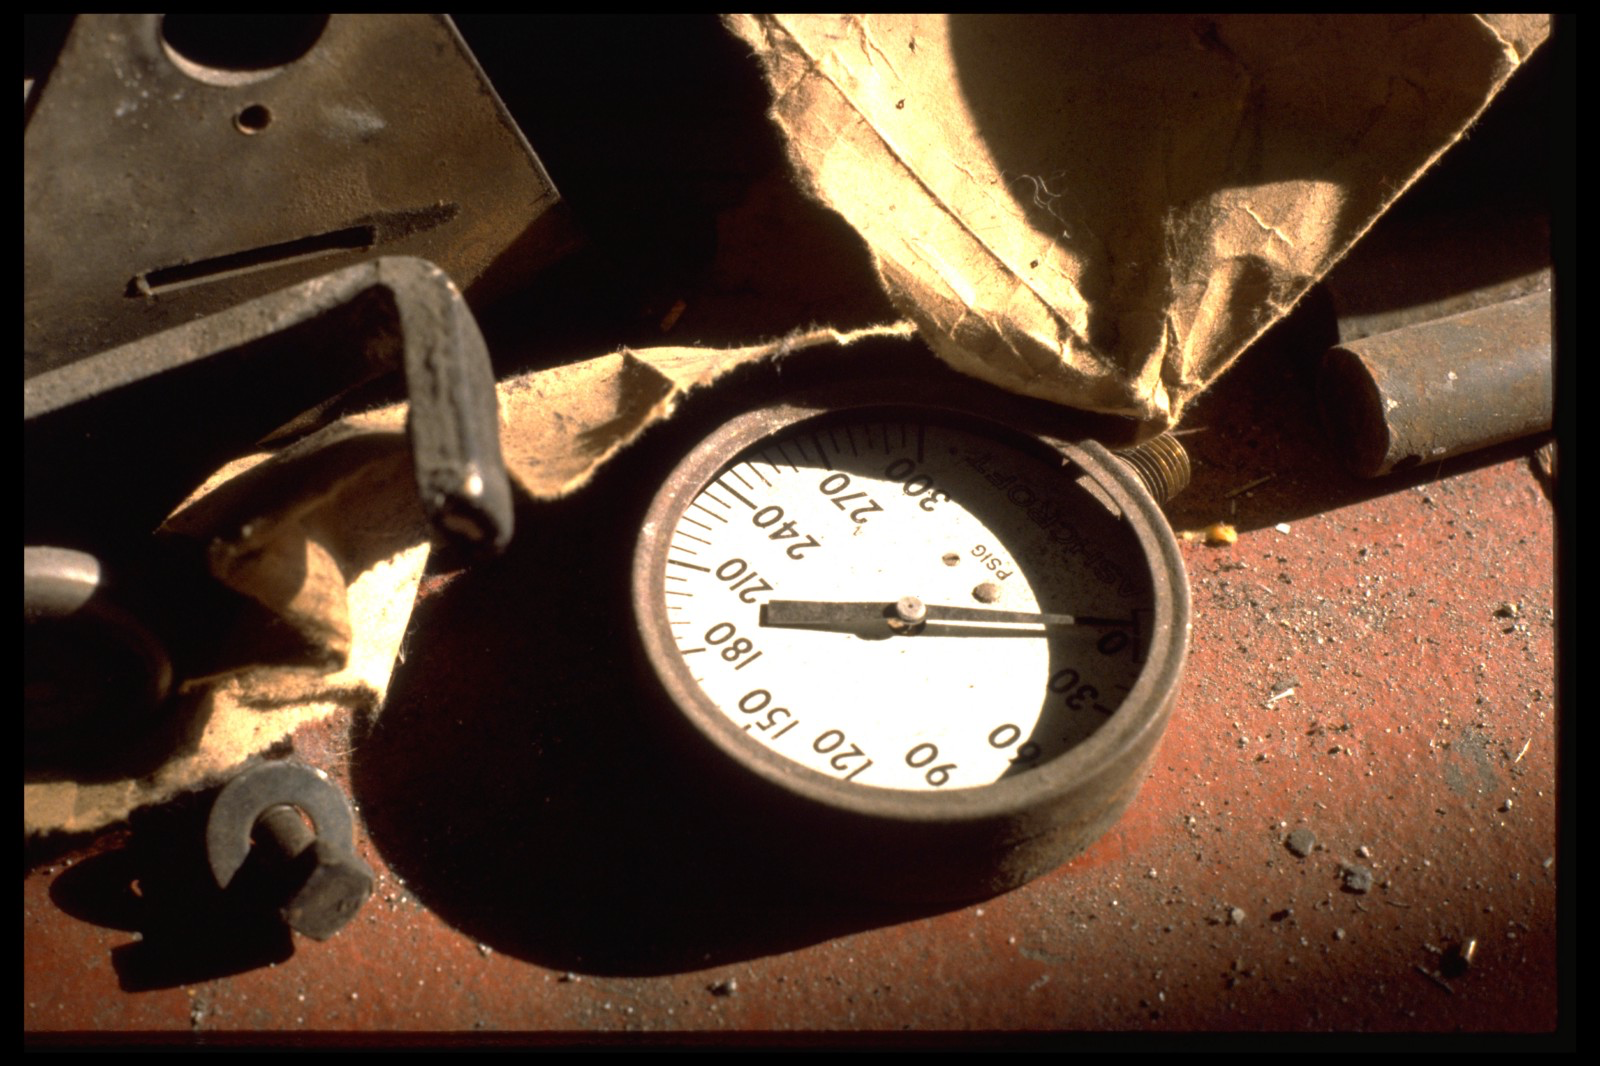 broken mechanical pressure gauge and other random debris in close up on a red cement shop floor